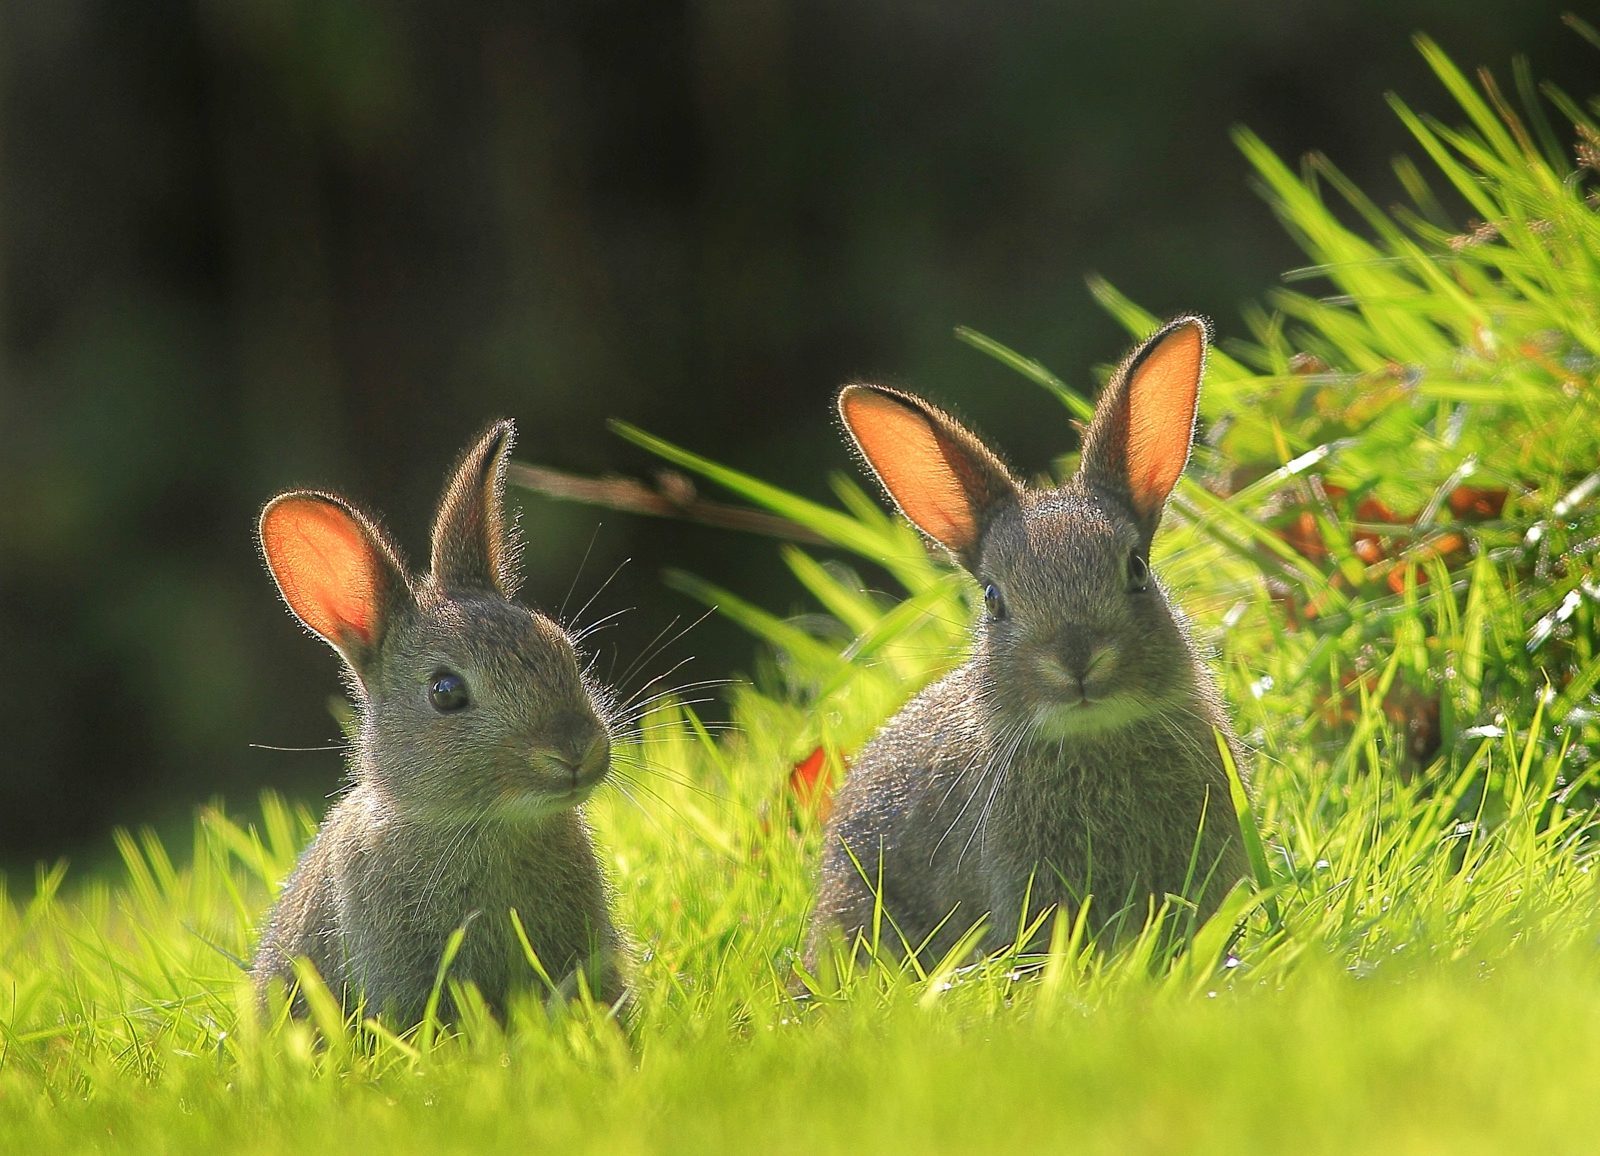 Bbc countryfile photo competition 2019 voting